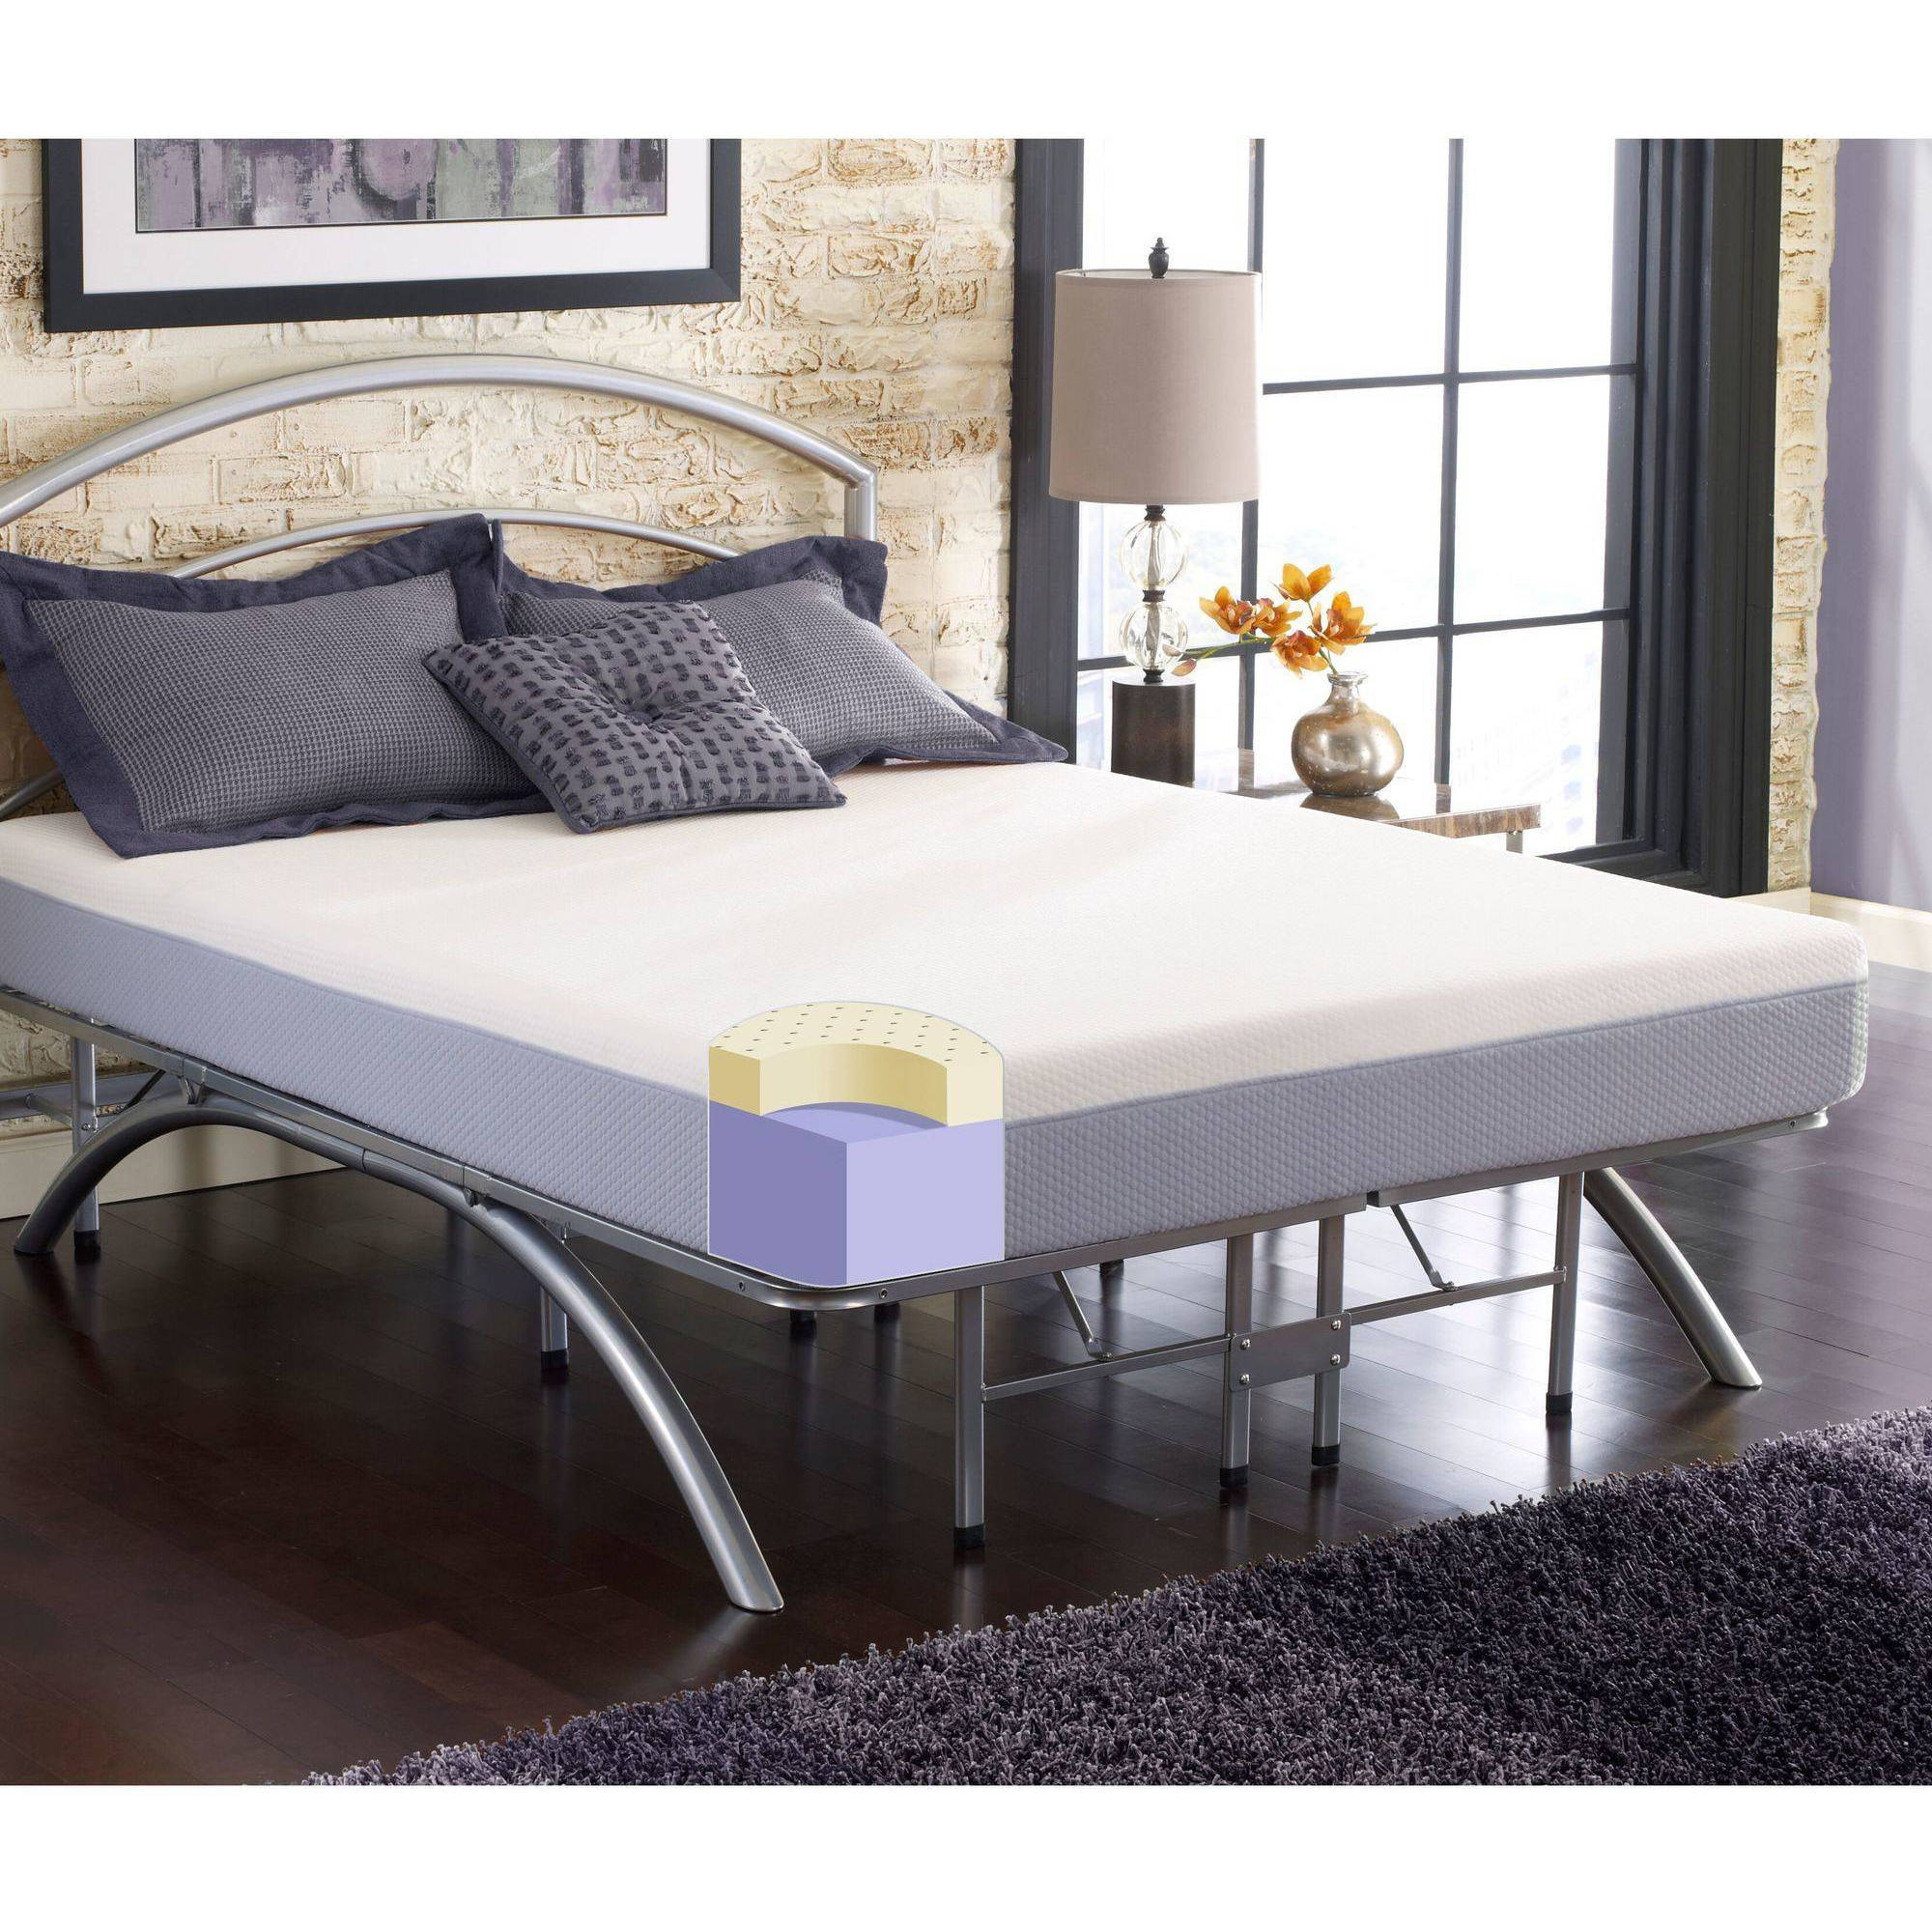 "Contura I 8"" Medium Firm Plush Cool Flex Memory Foam Mattress Bed In Box, Multiple Sizes"